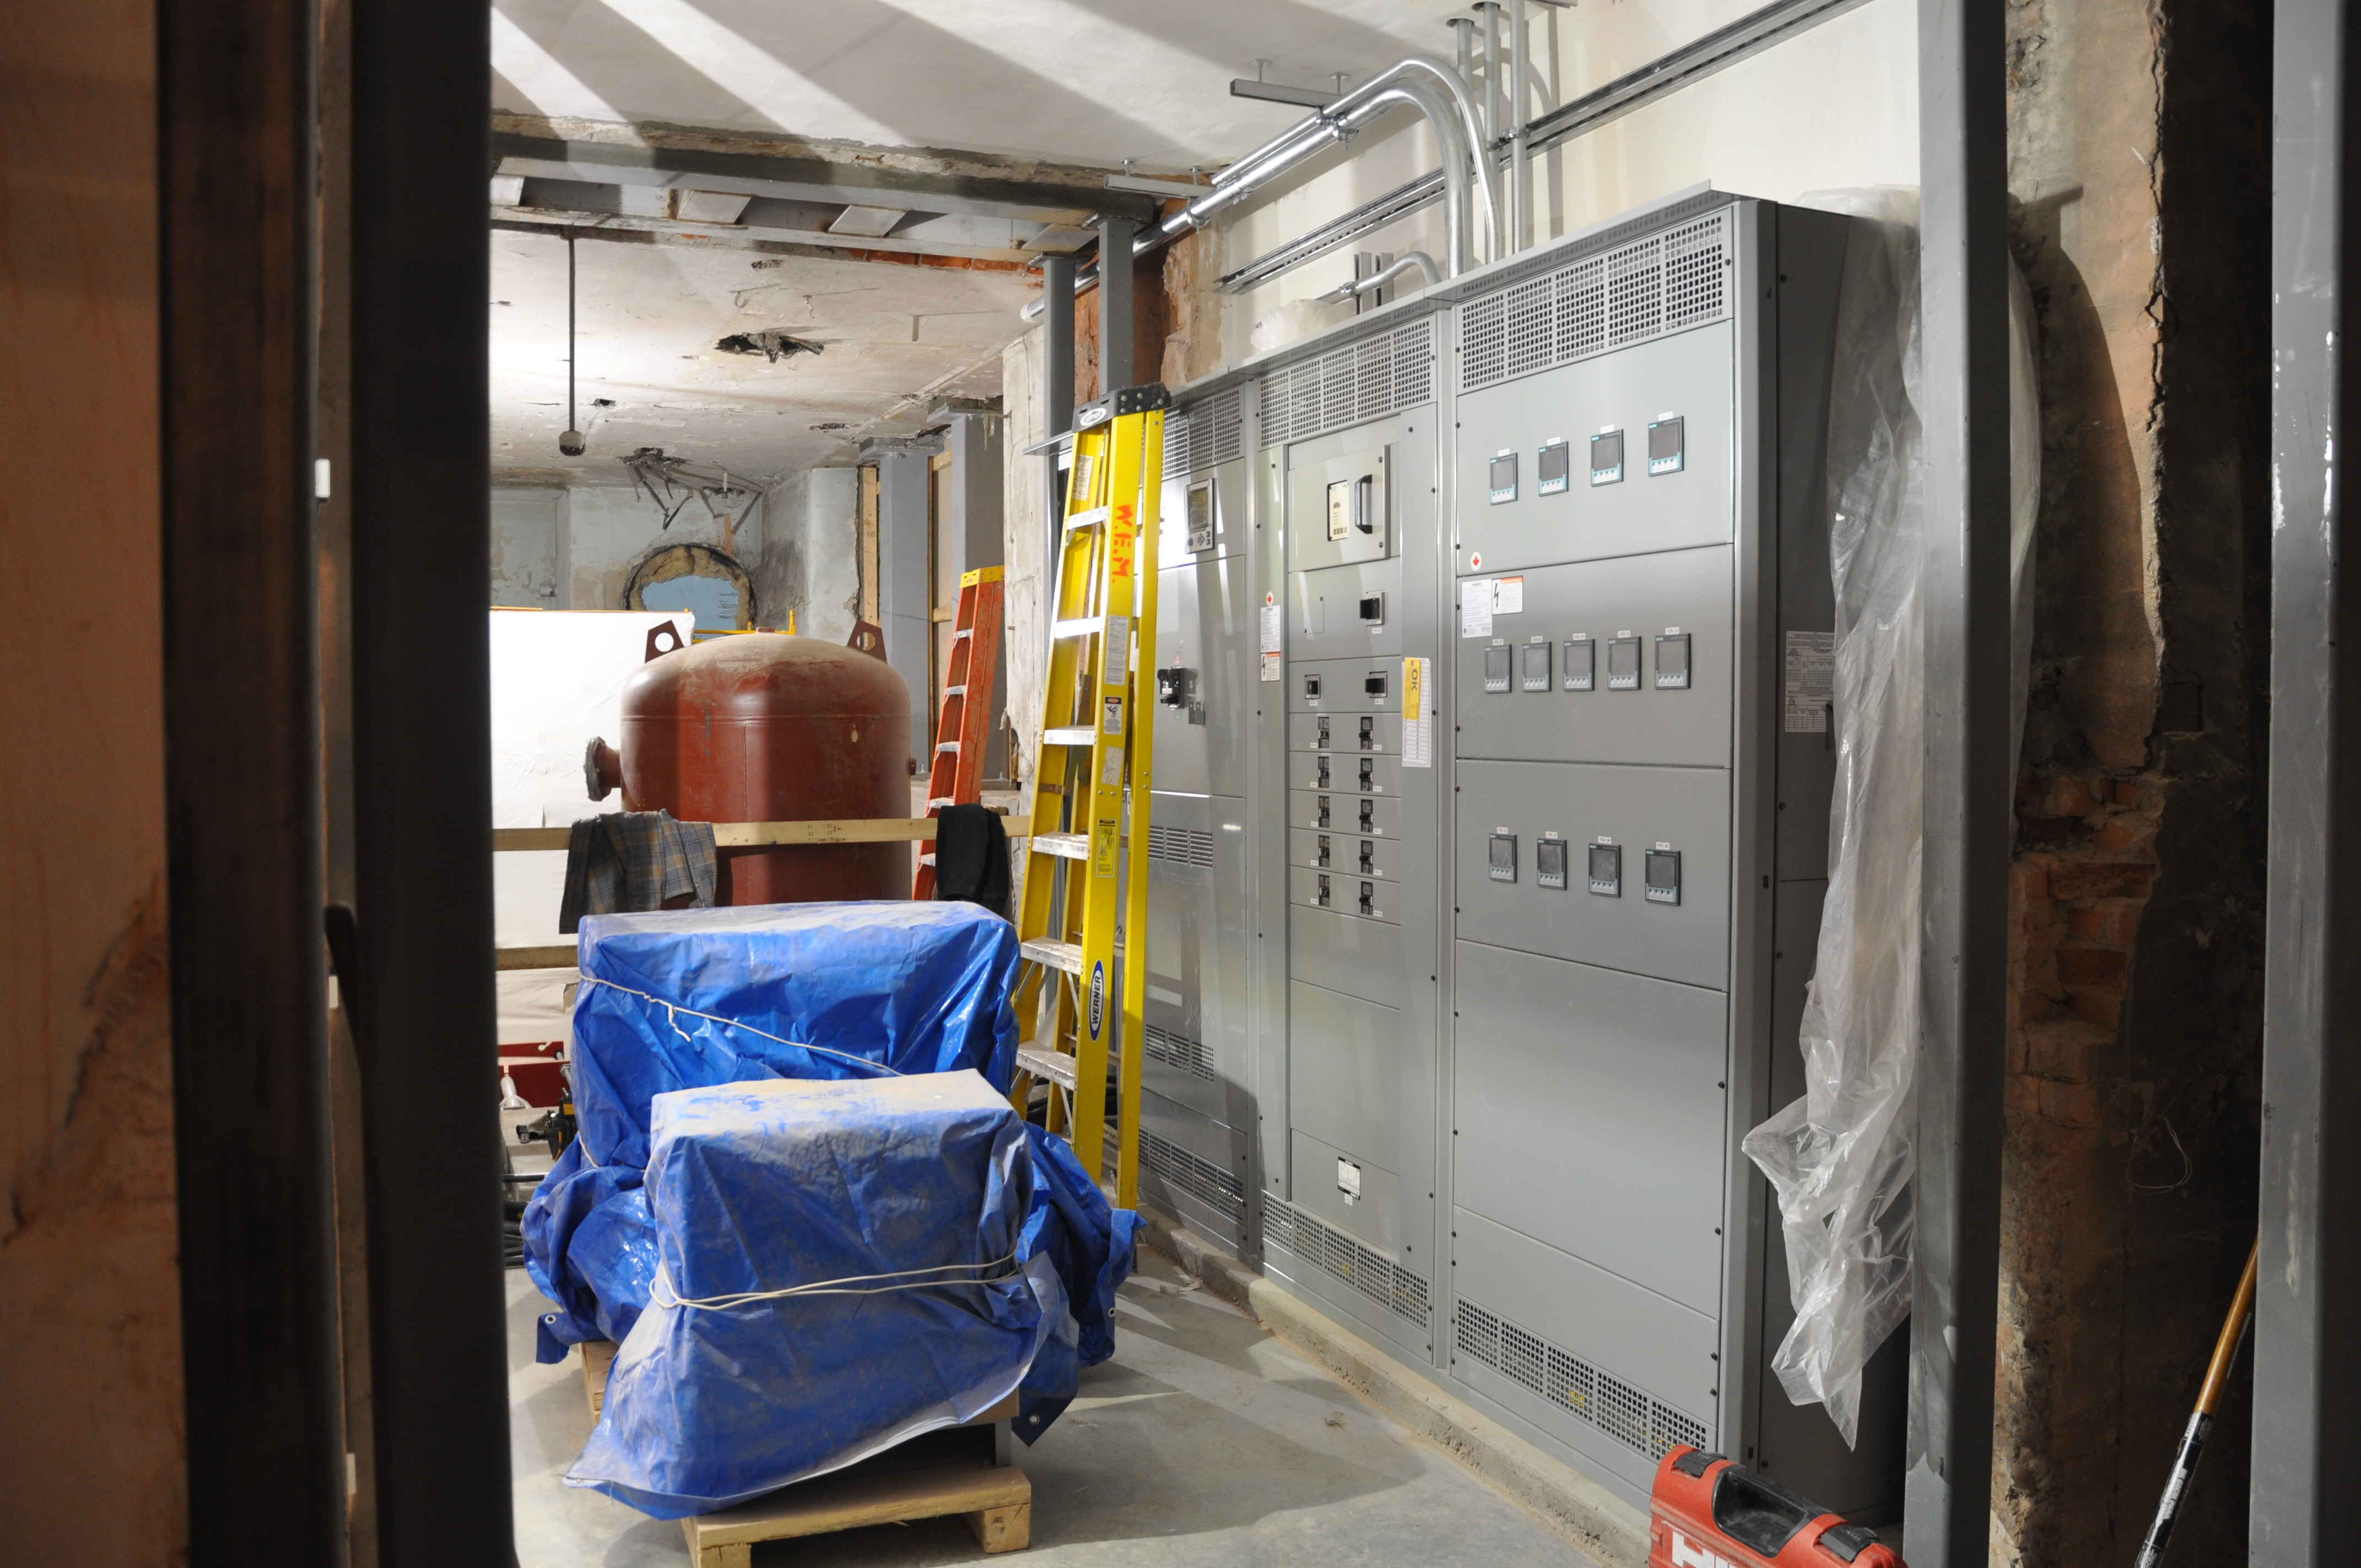 Electrical panels await full energization